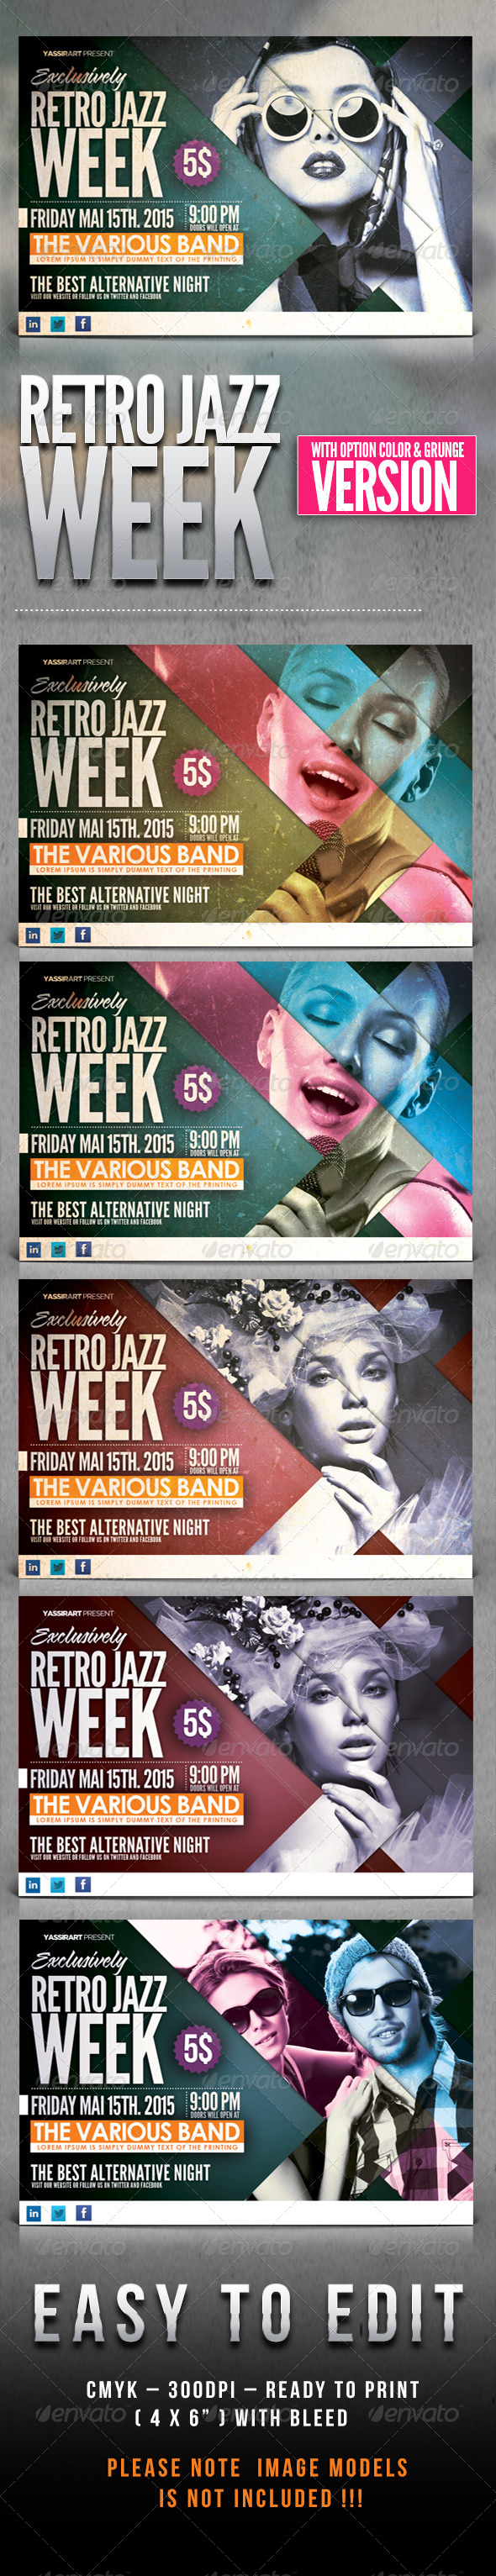 Retro Jazz Week Flyer Template - Flyers Print Templates